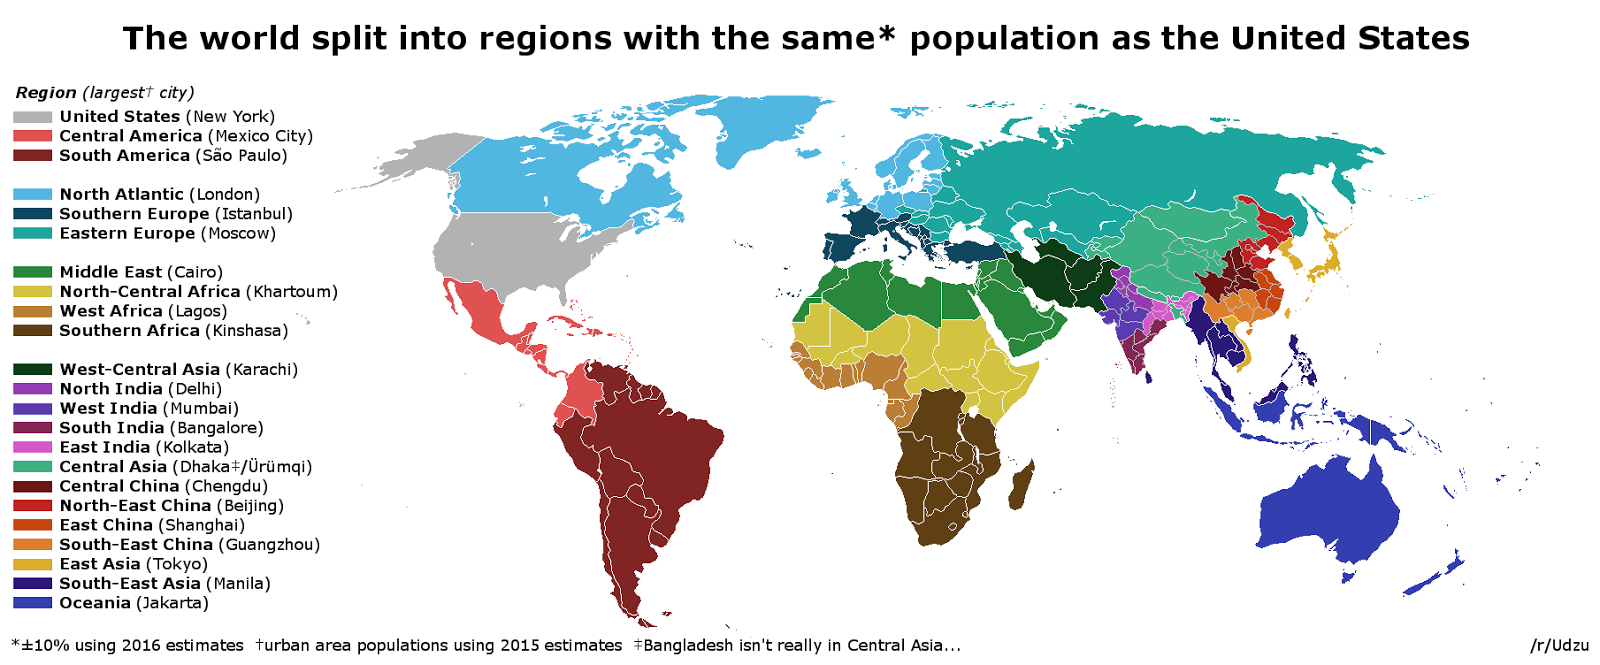 The world split into regions with the same population as the U.S.